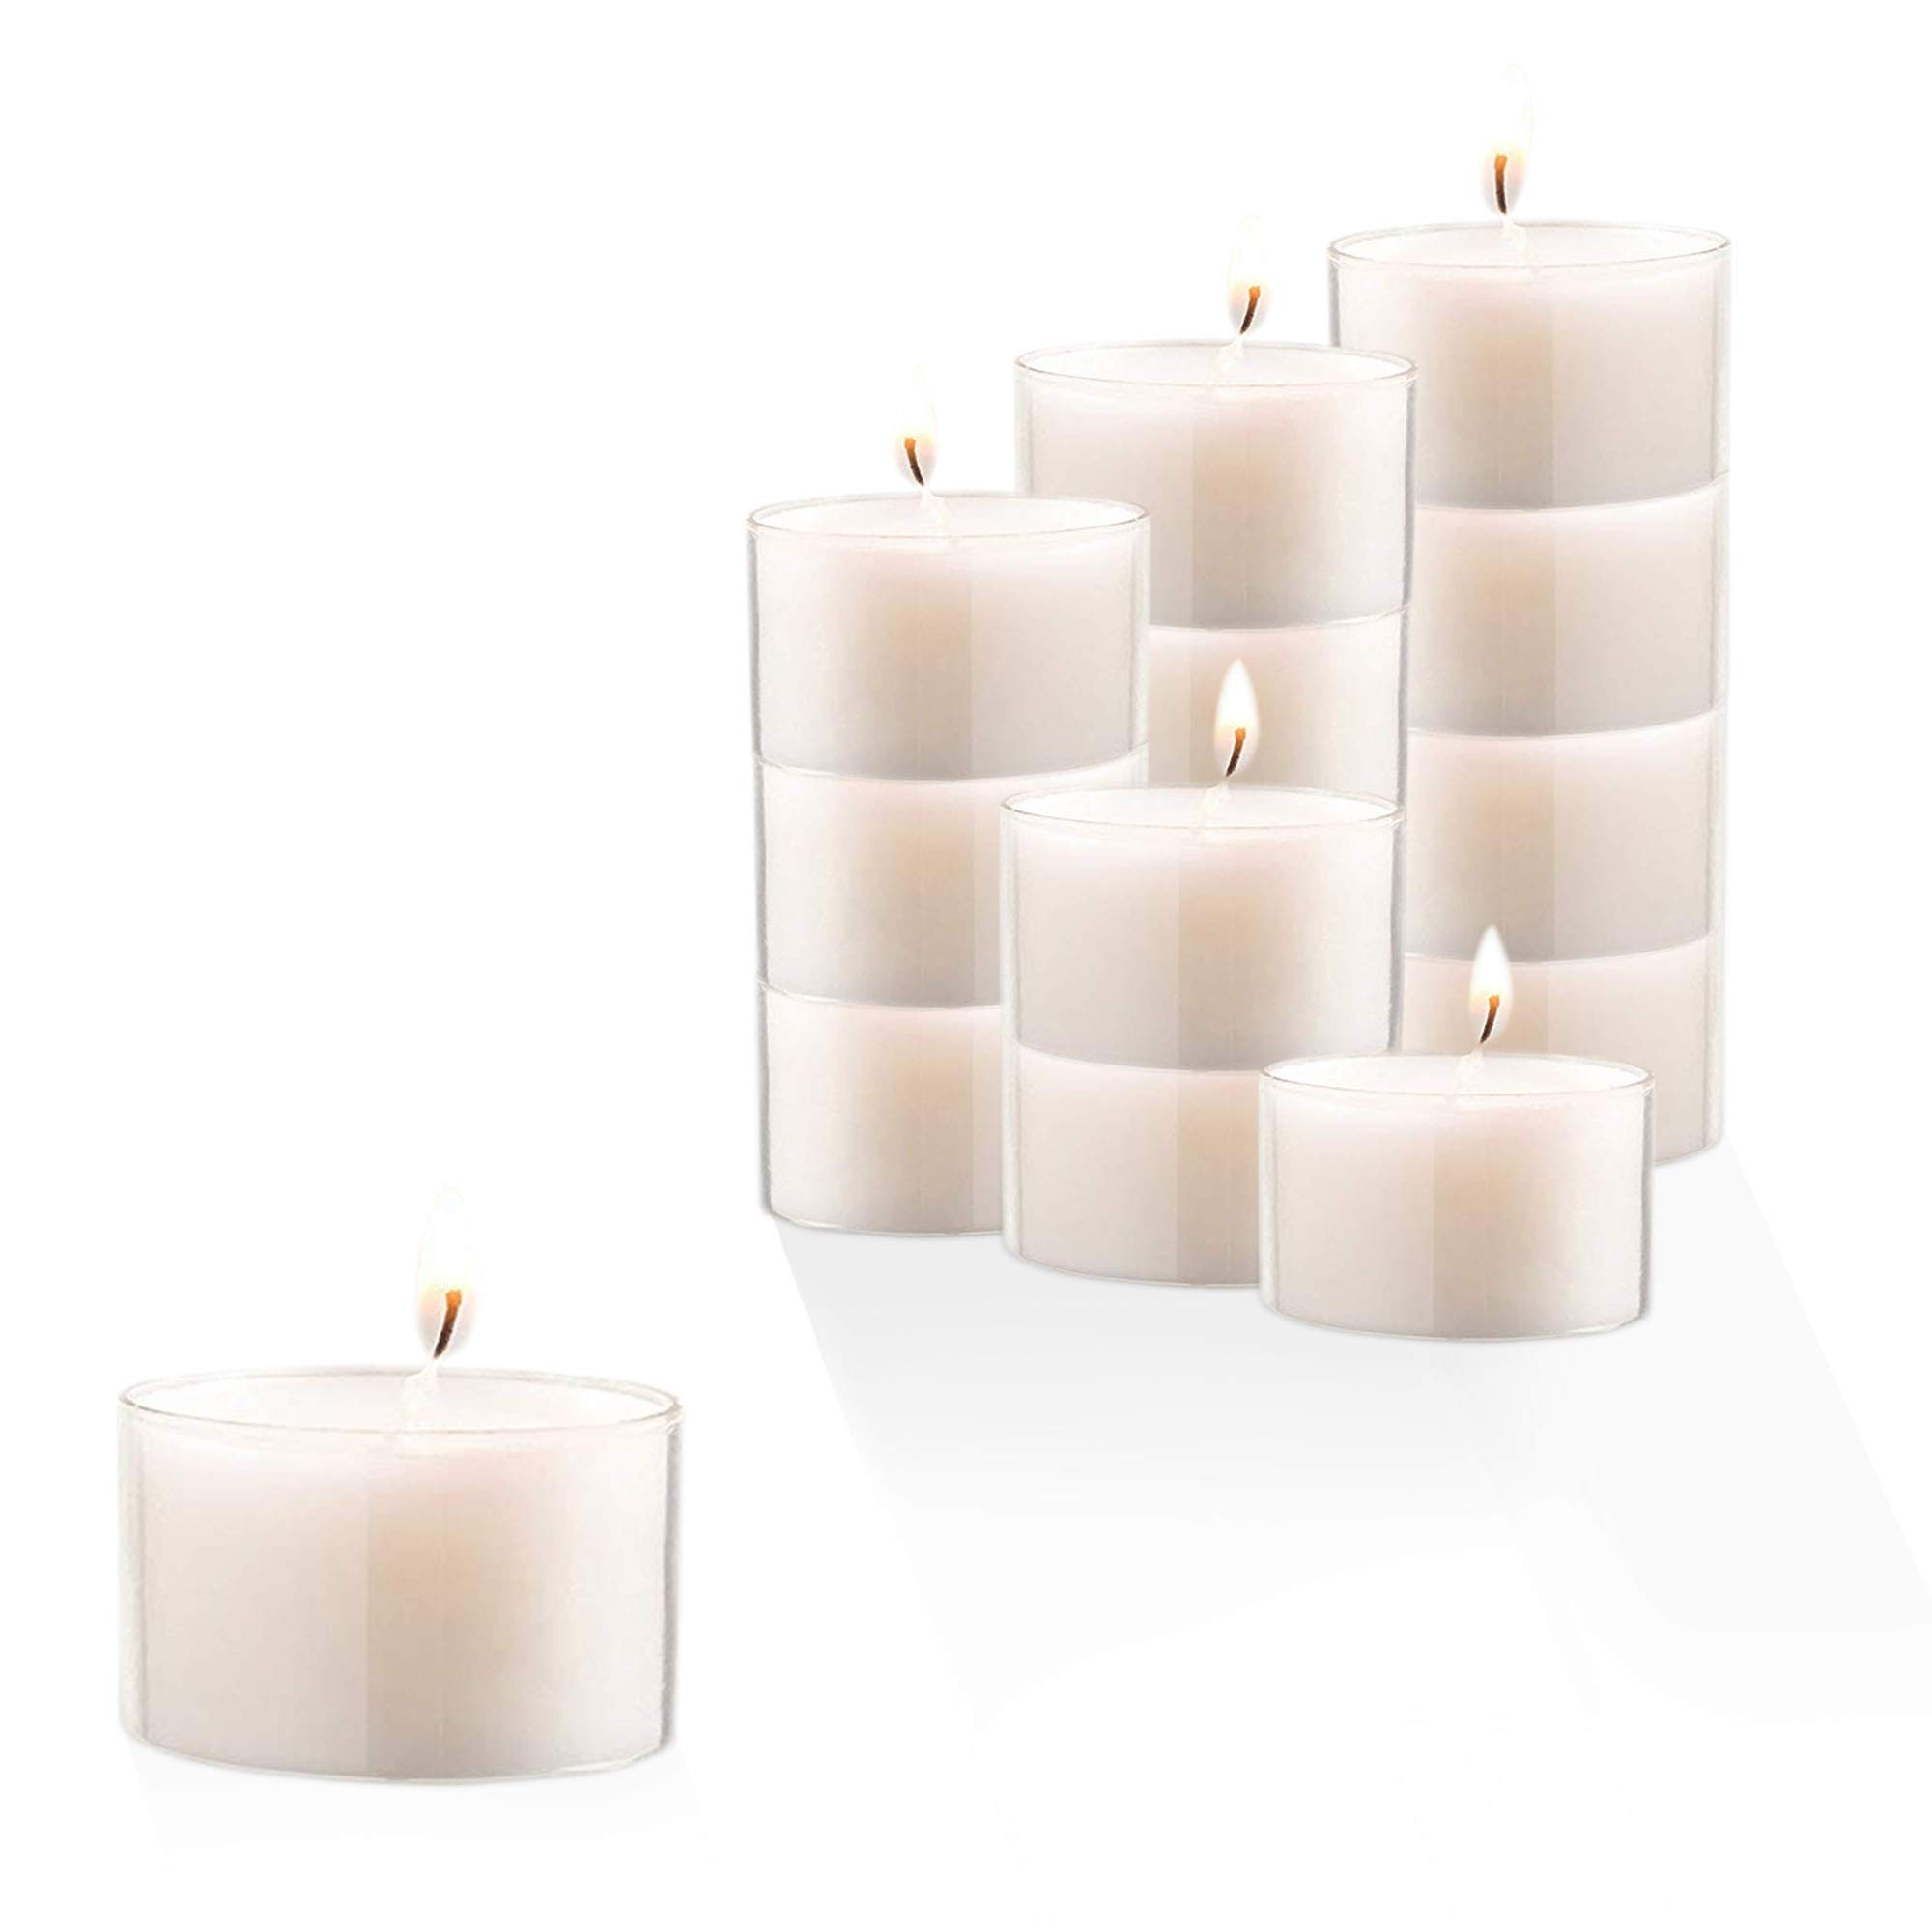 Stock Your Home 8-Hour Burning White Unscented Classic Tea Light Candles Great for Home, Weddings, Parties, Special Occasions & Holiday Decorations (Set of 30) by Stock Your Home